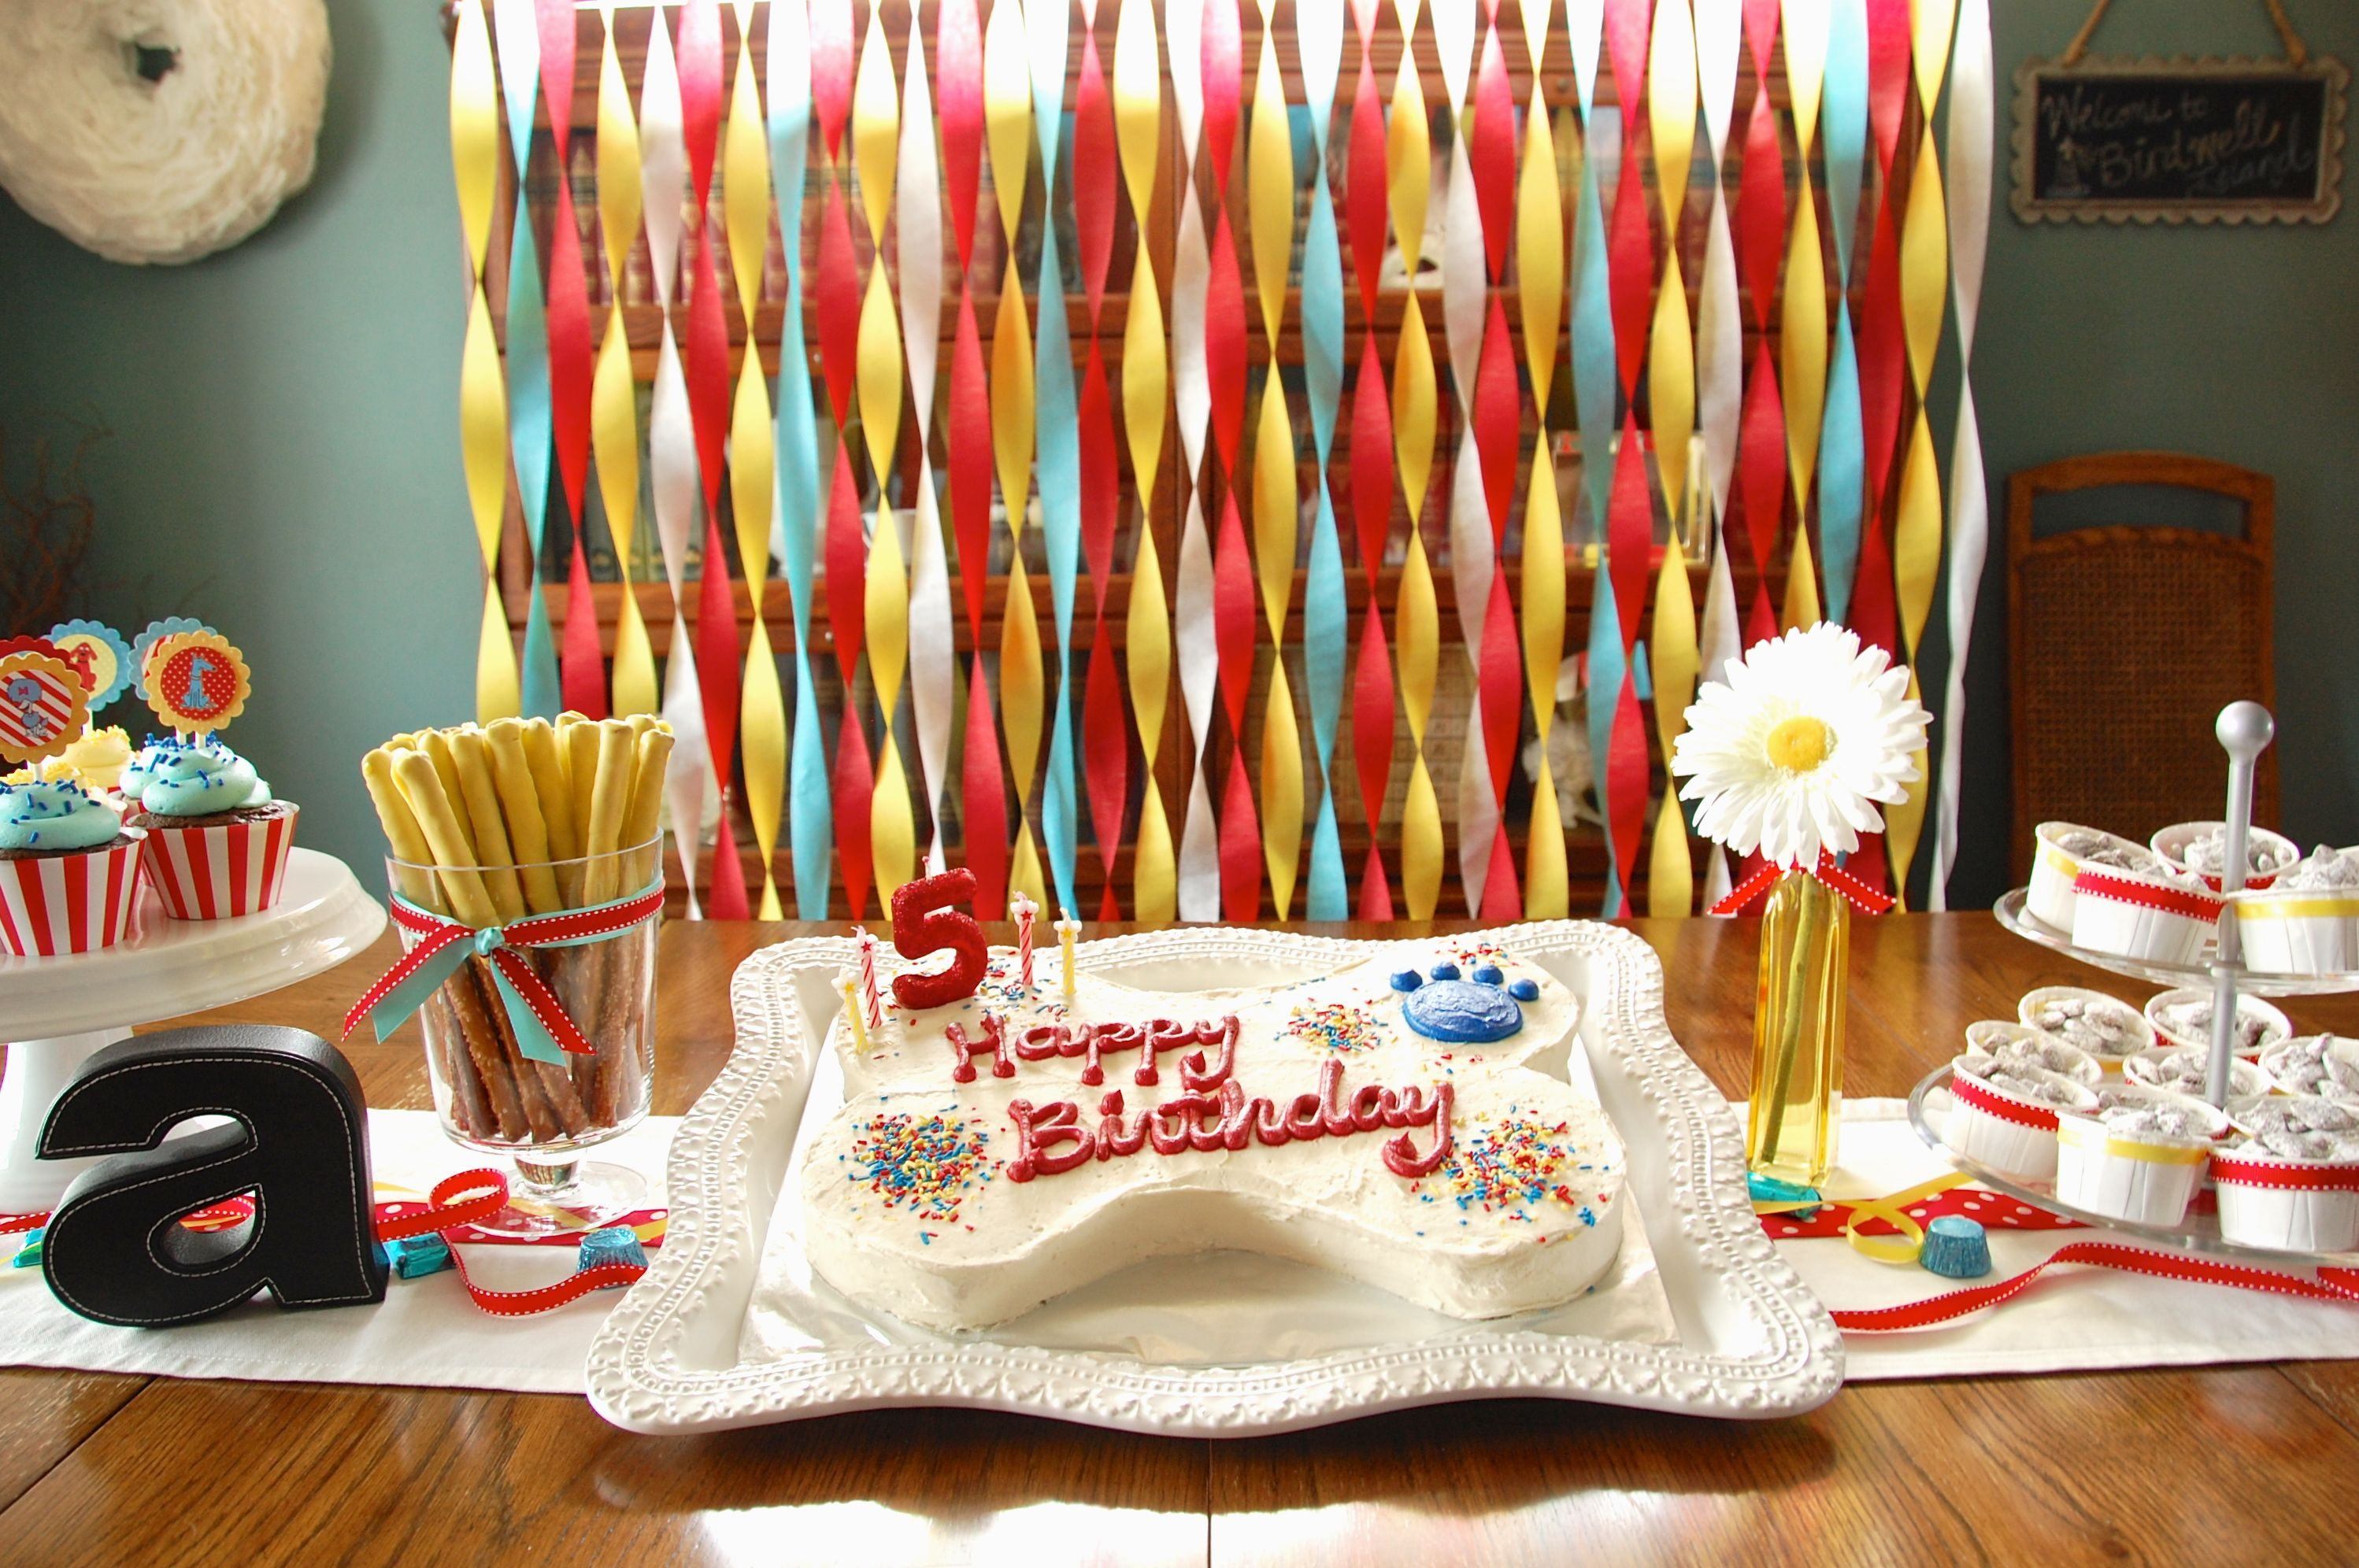 Clifford The Big Red Dog Birthday Party Cake Table For The Whittle